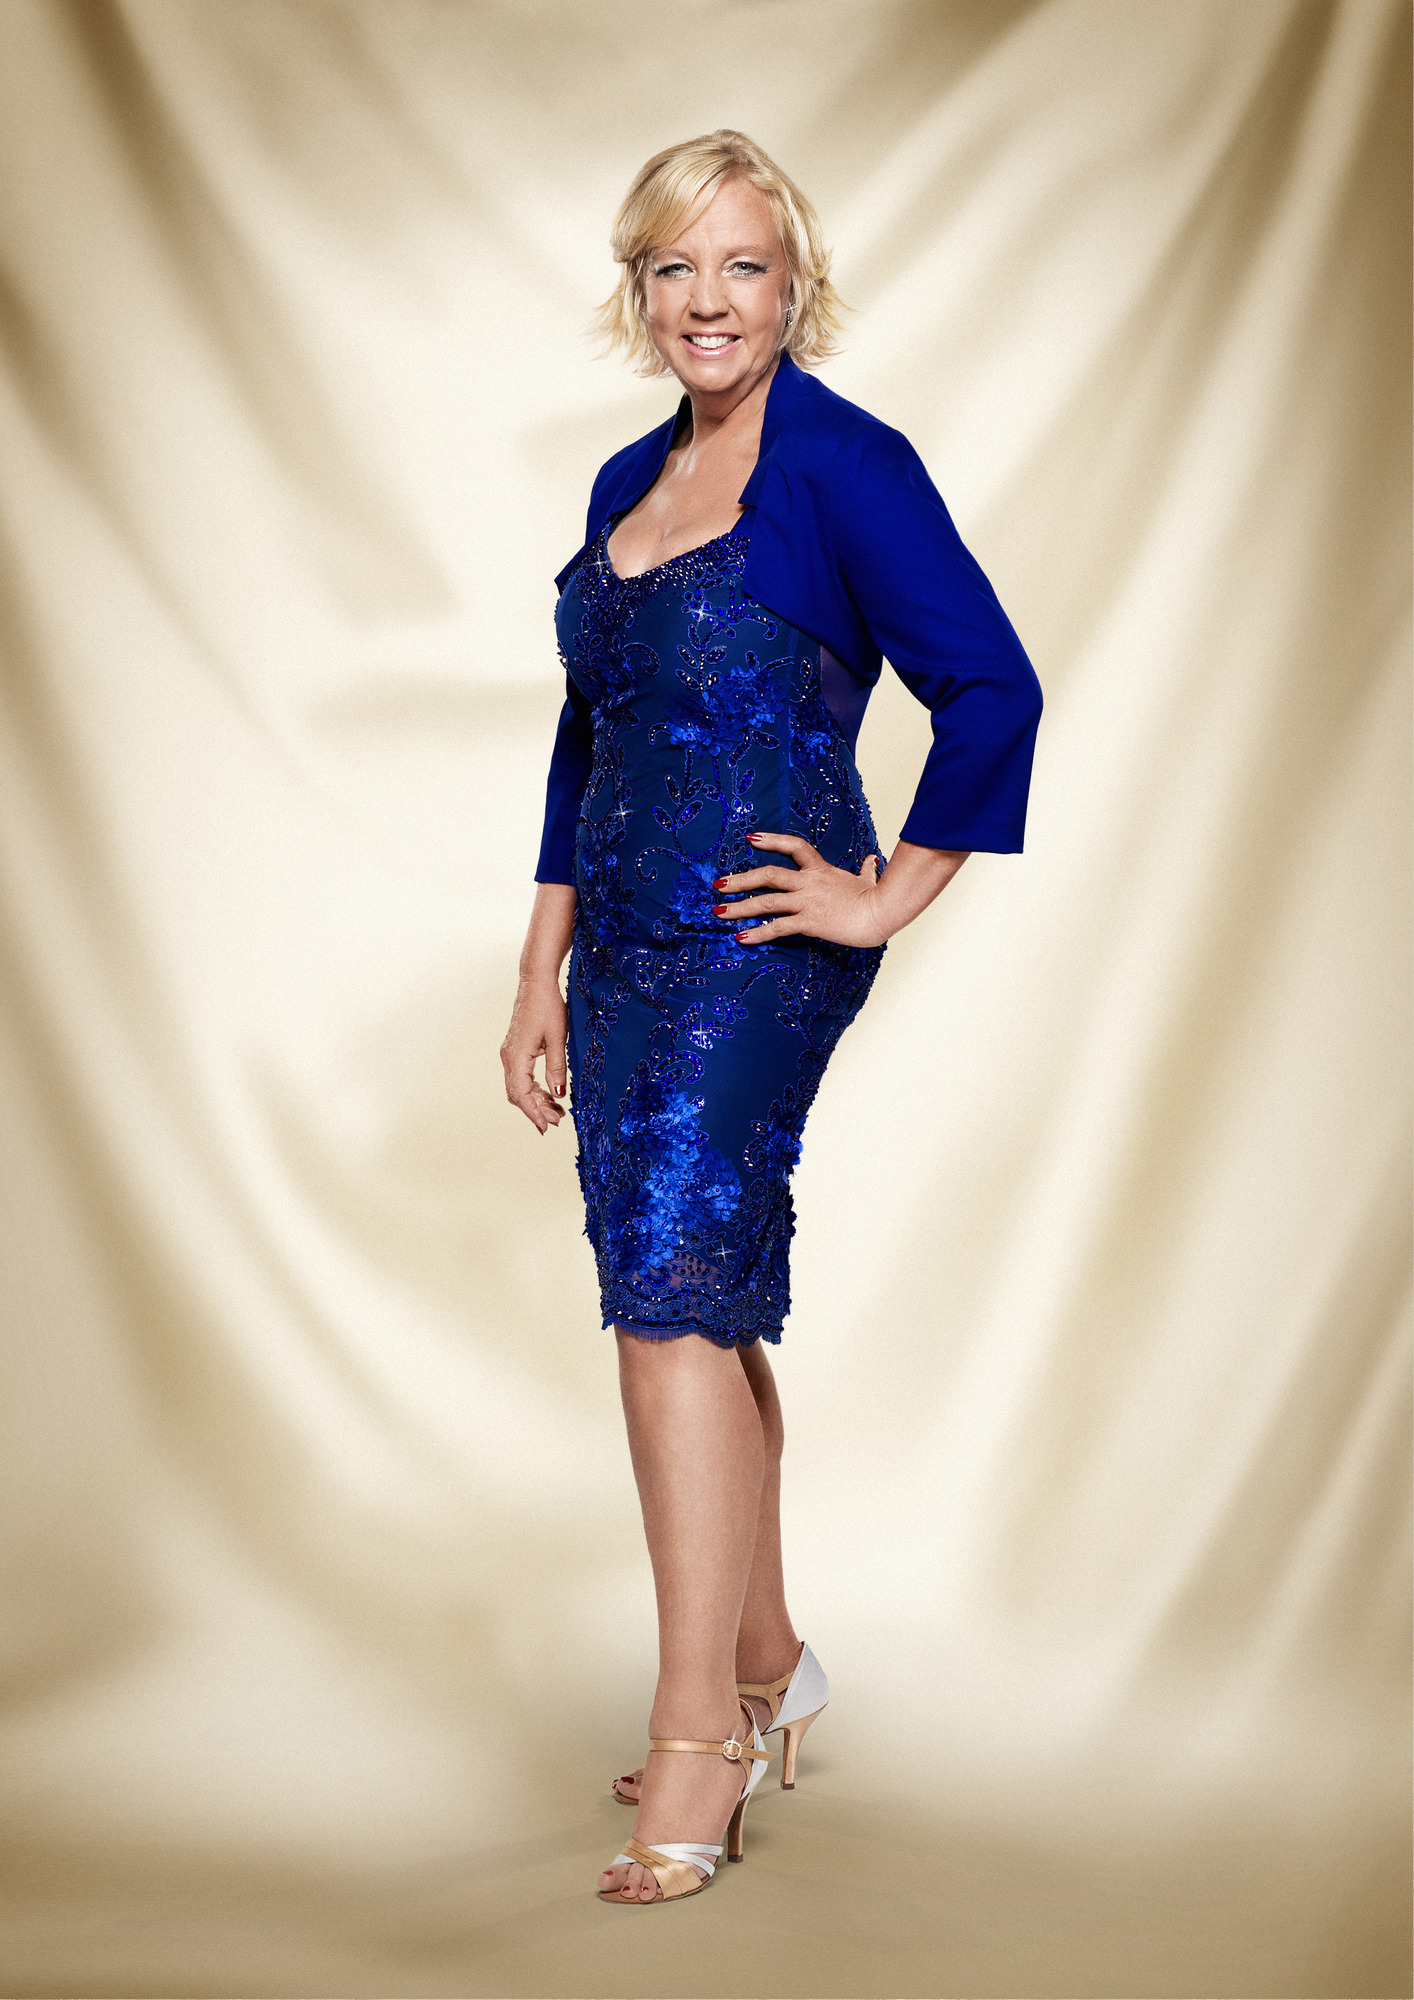 Deborah Meaden: In the past I would have won Strictly Come Dancing